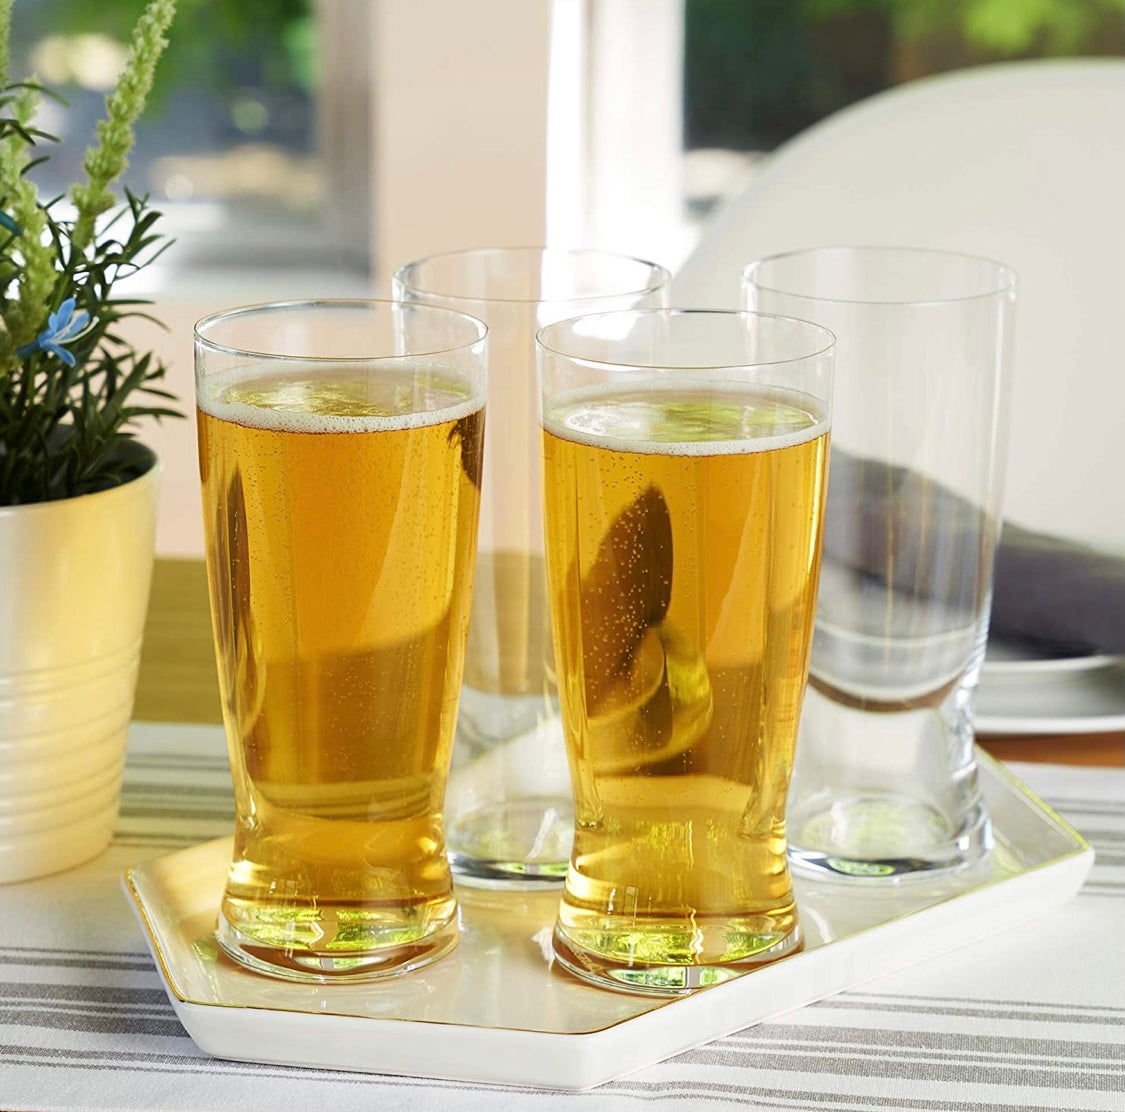 Classic Lager Beer Glasses - Set of 4